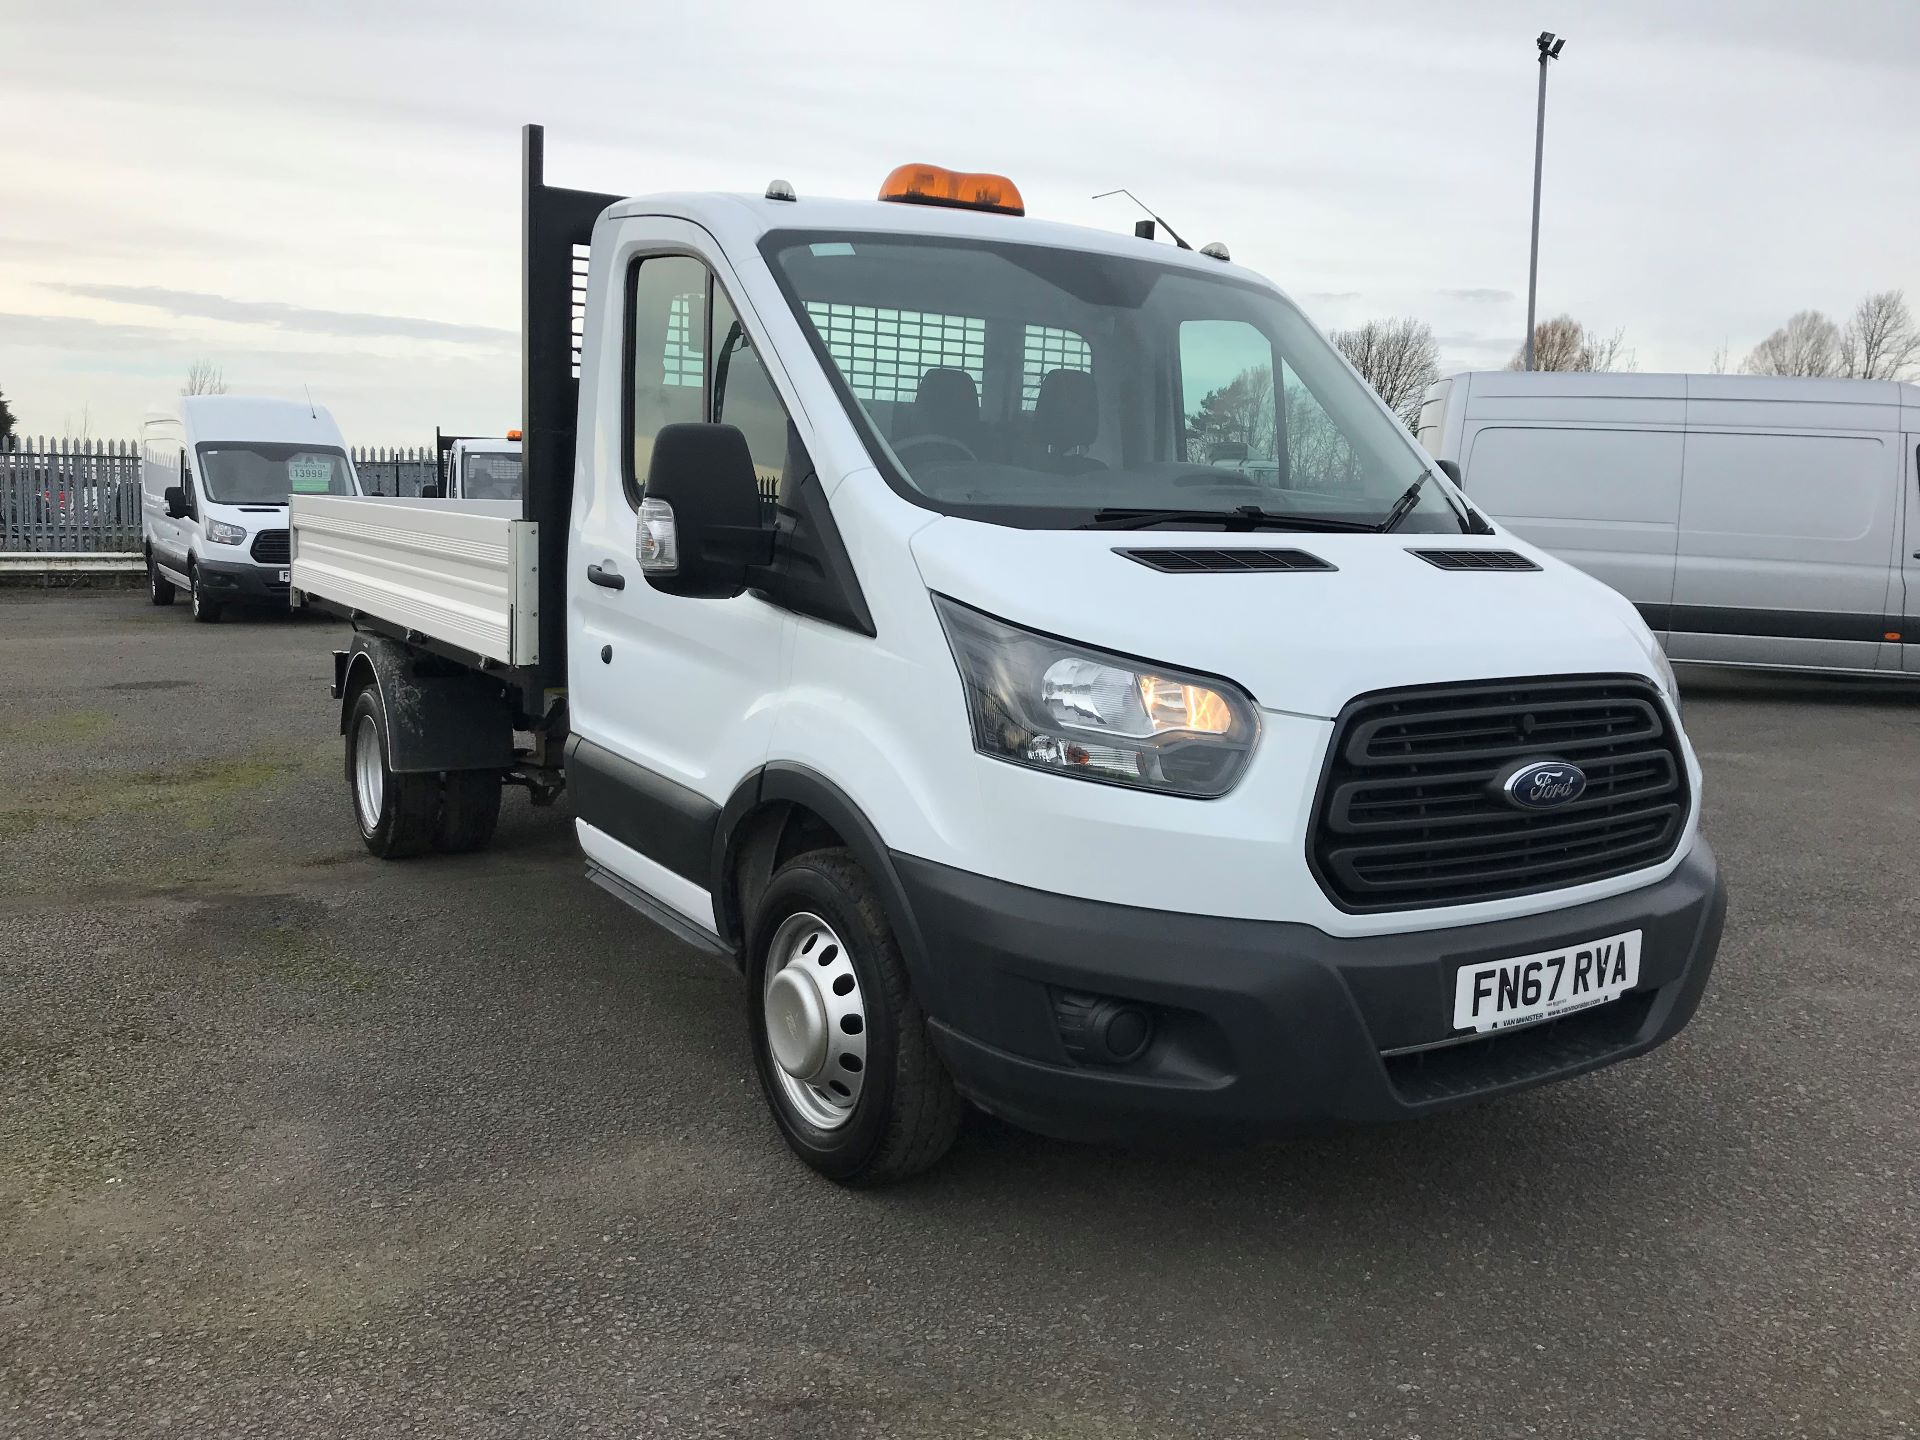 2018 Ford Transit 2.0 Tdci 130Ps 'One Stop' Tipper [1 Way]